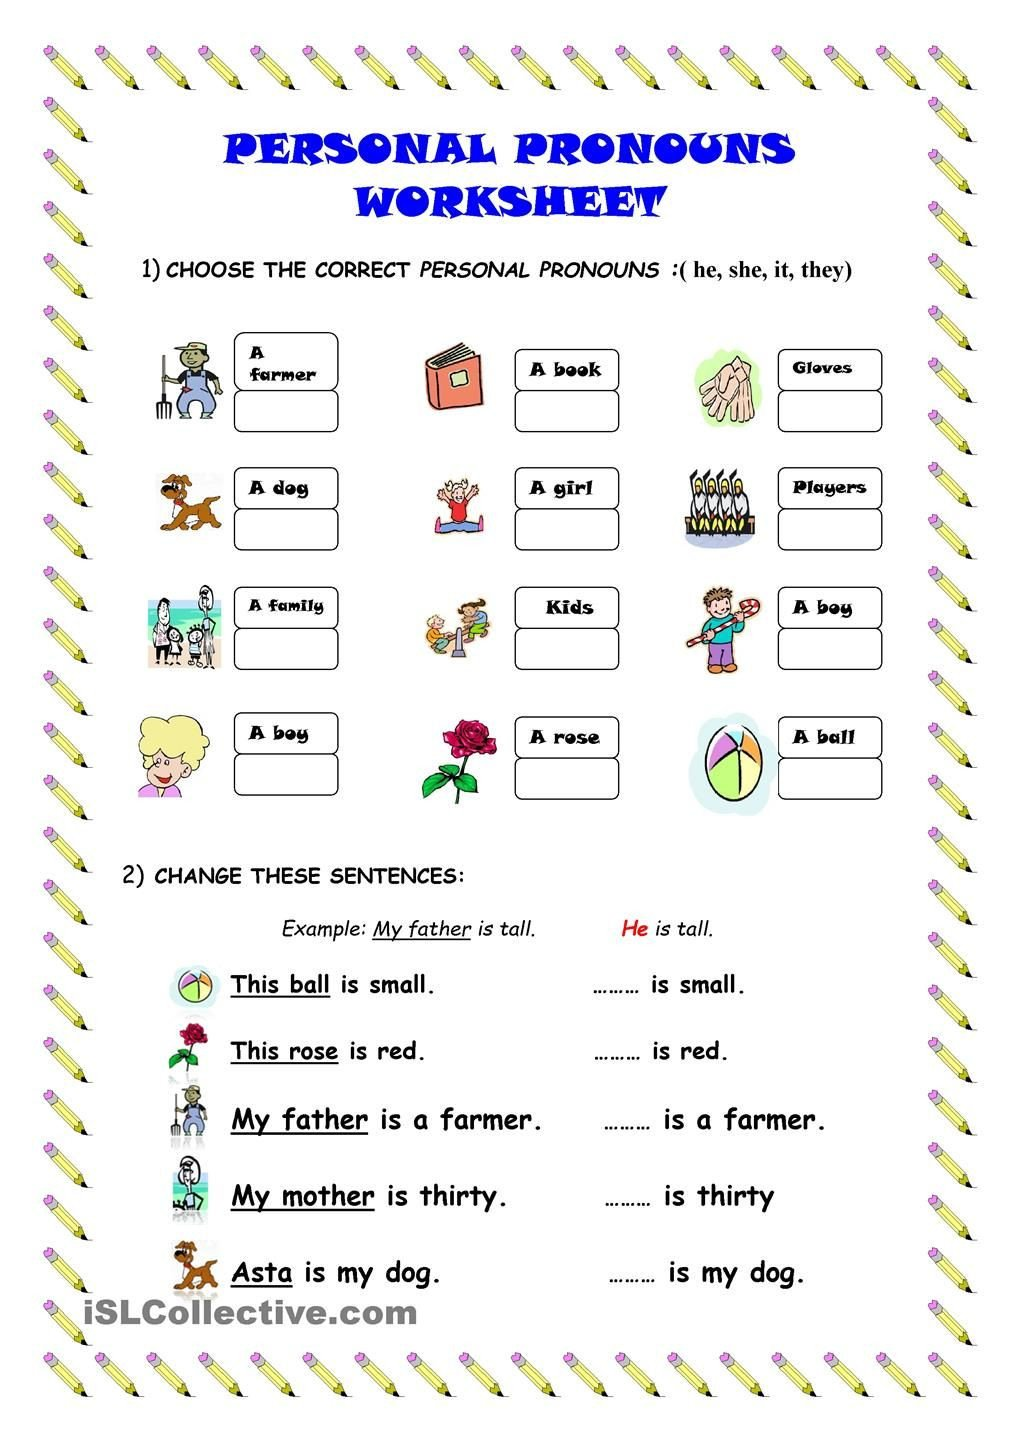 Pronoun Worksheets Second Grade Personal Pronouns Worksheet Kindergarten Level